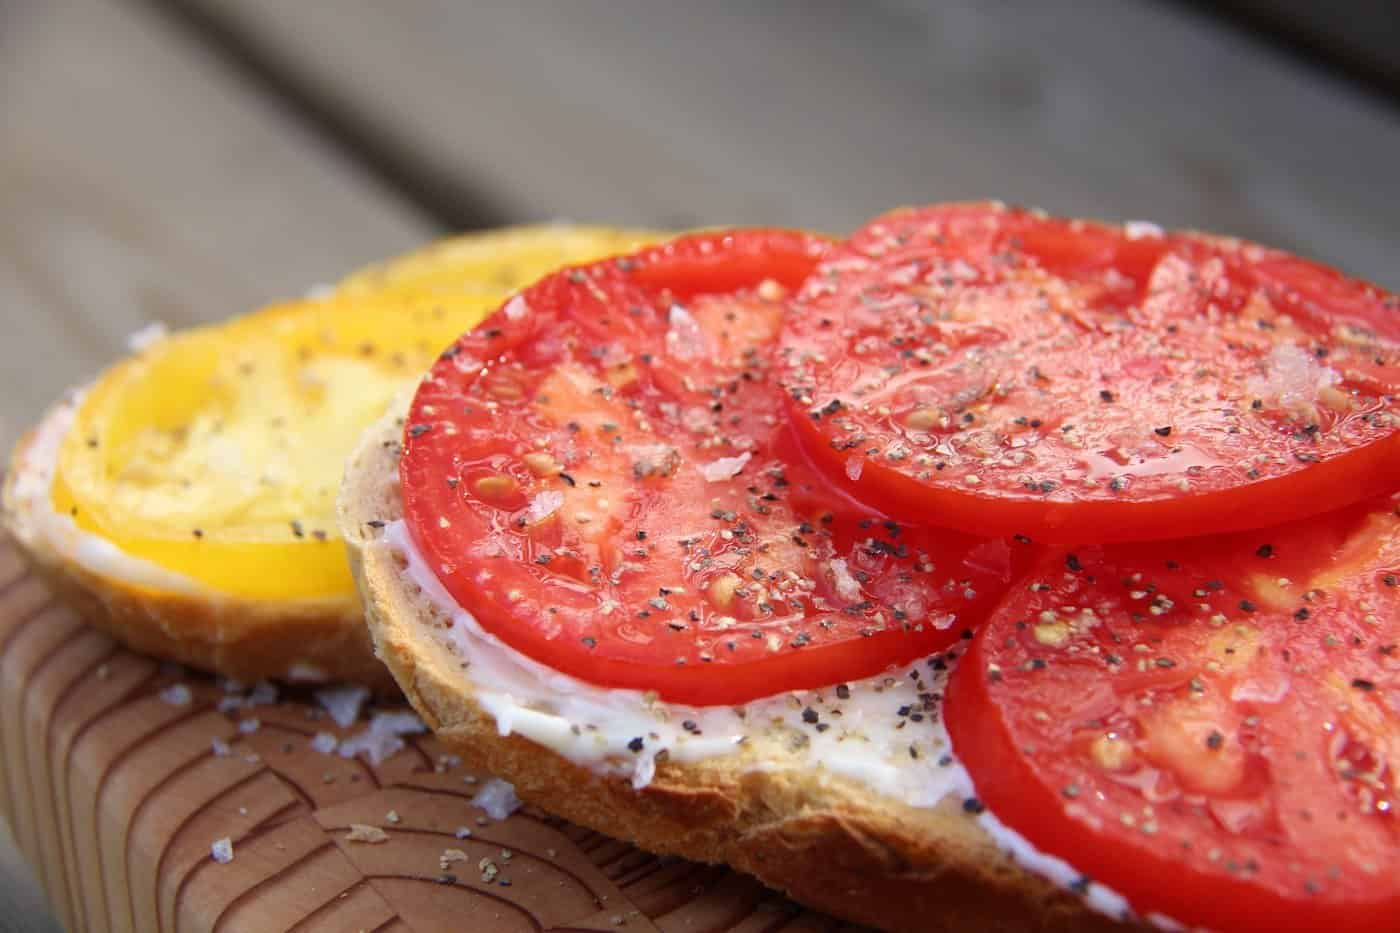 Heirloom Tomatoes on Toast: A Delicious Farmhouse Snack